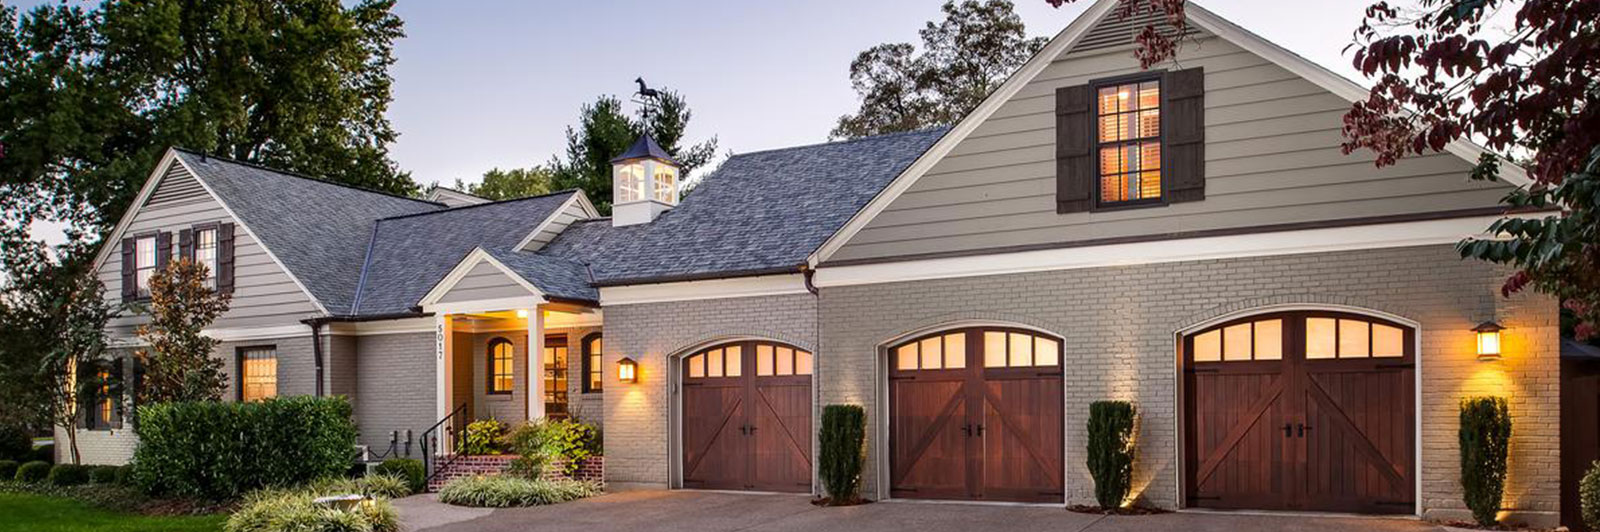 Crawford Door Systems Wilmington Nc Garage Doors